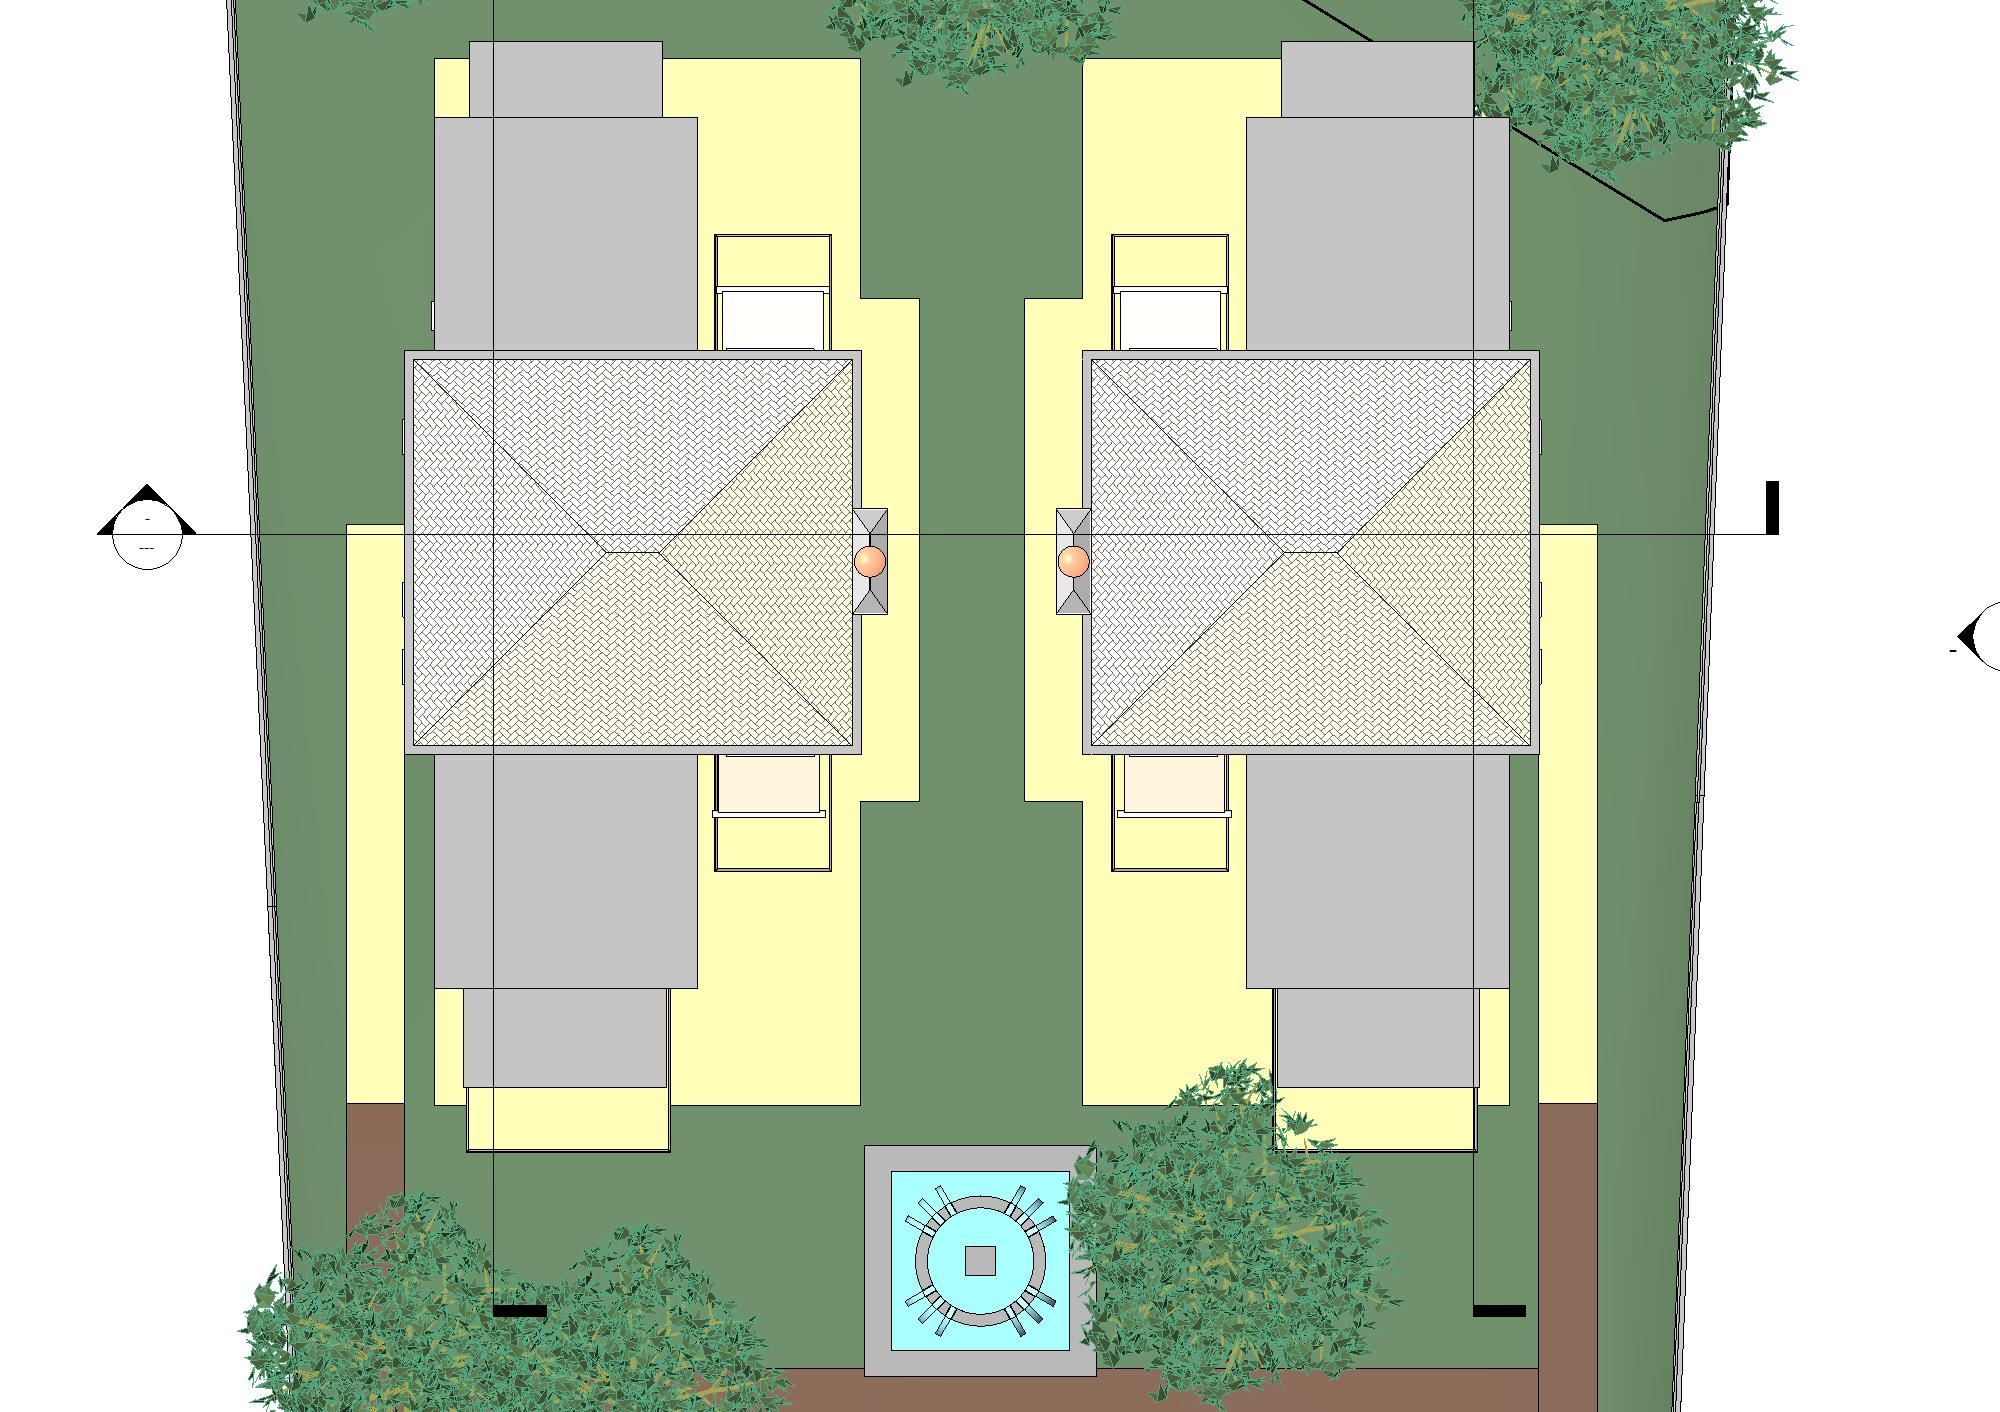 Archiectural design of 2 villas